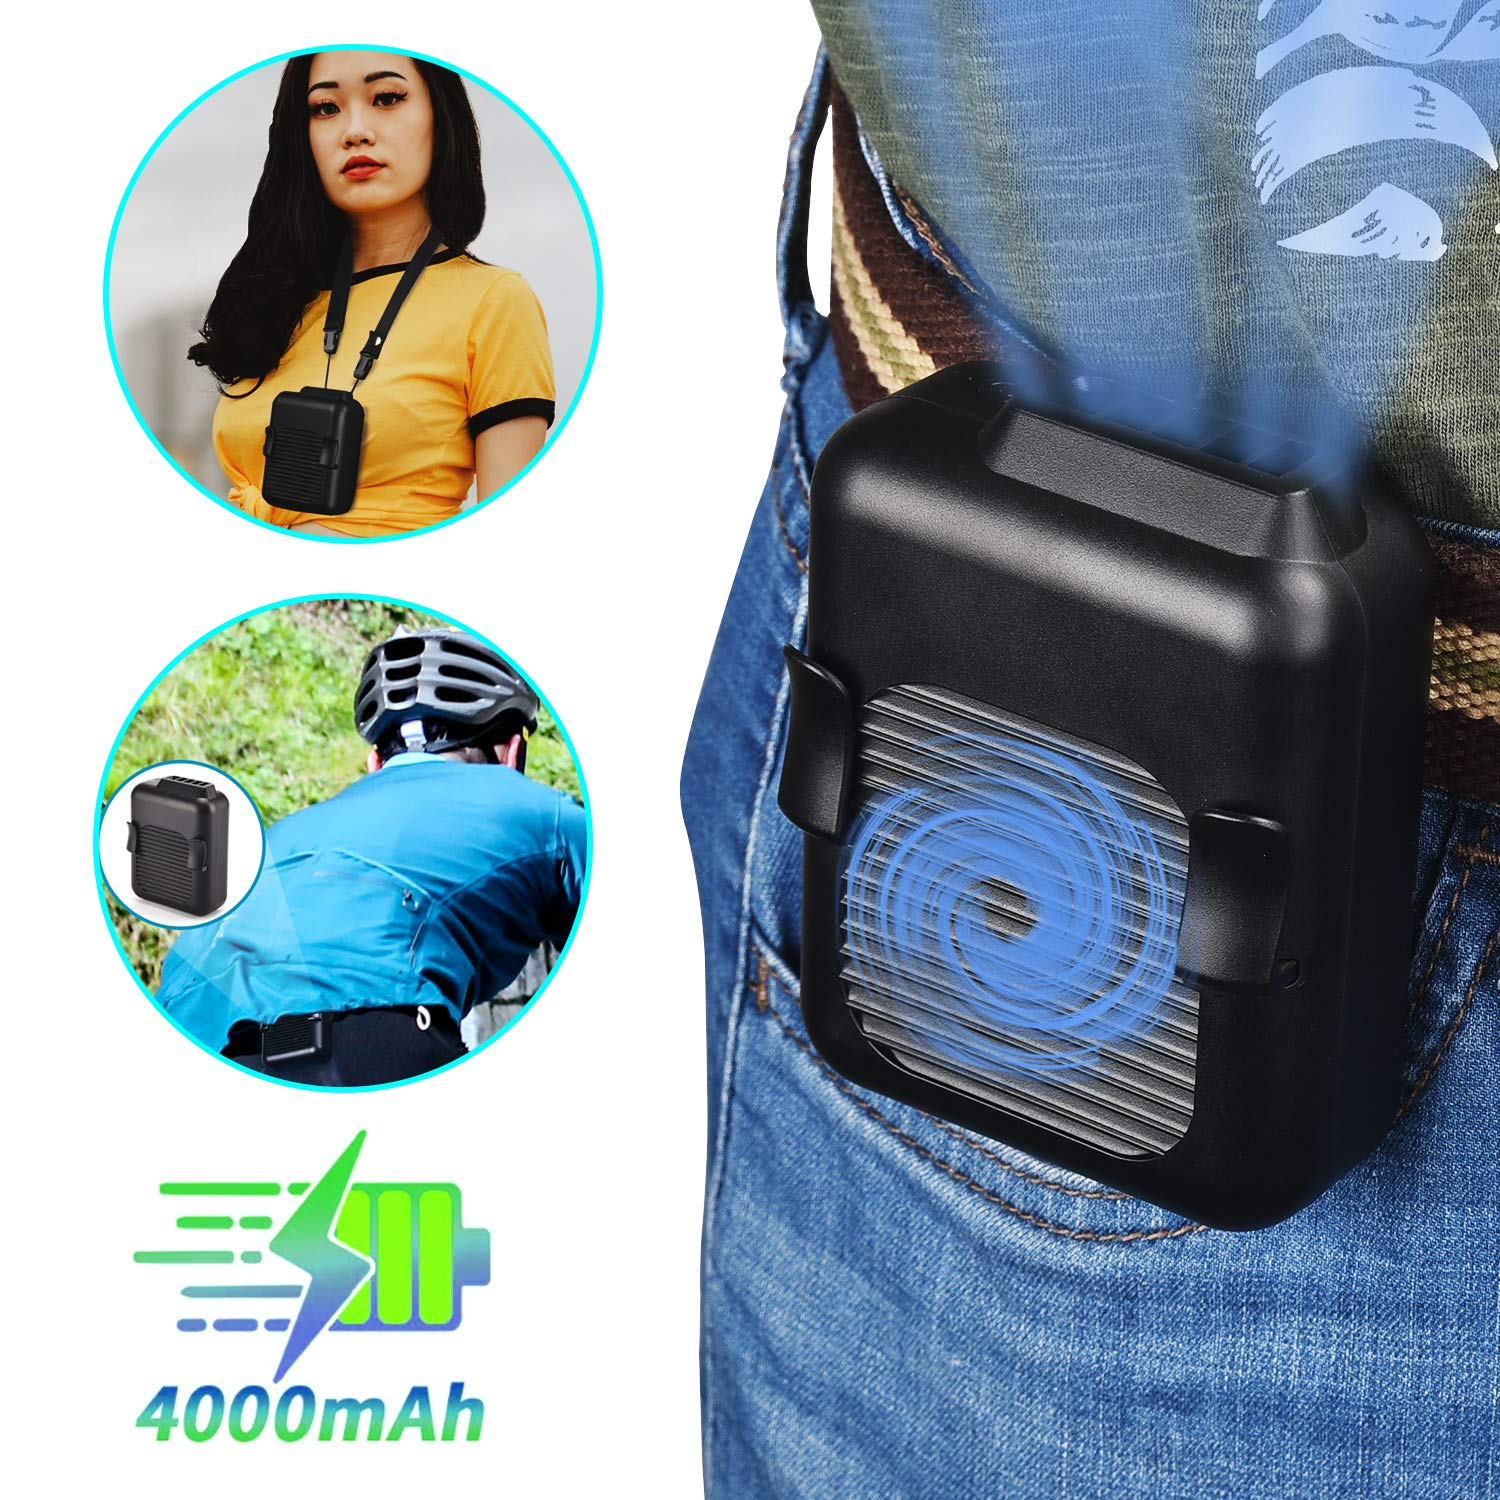 Socool fan Waist Fan,Portable Belt Fan,Personal Mini Clip on Fan Necklace Fan 2in1, 15H Working Time, 5000RPM Strong Airflow with 42db, 3 Speeds for Camping, Fishing,Cycling,Travel and Outdoor Black